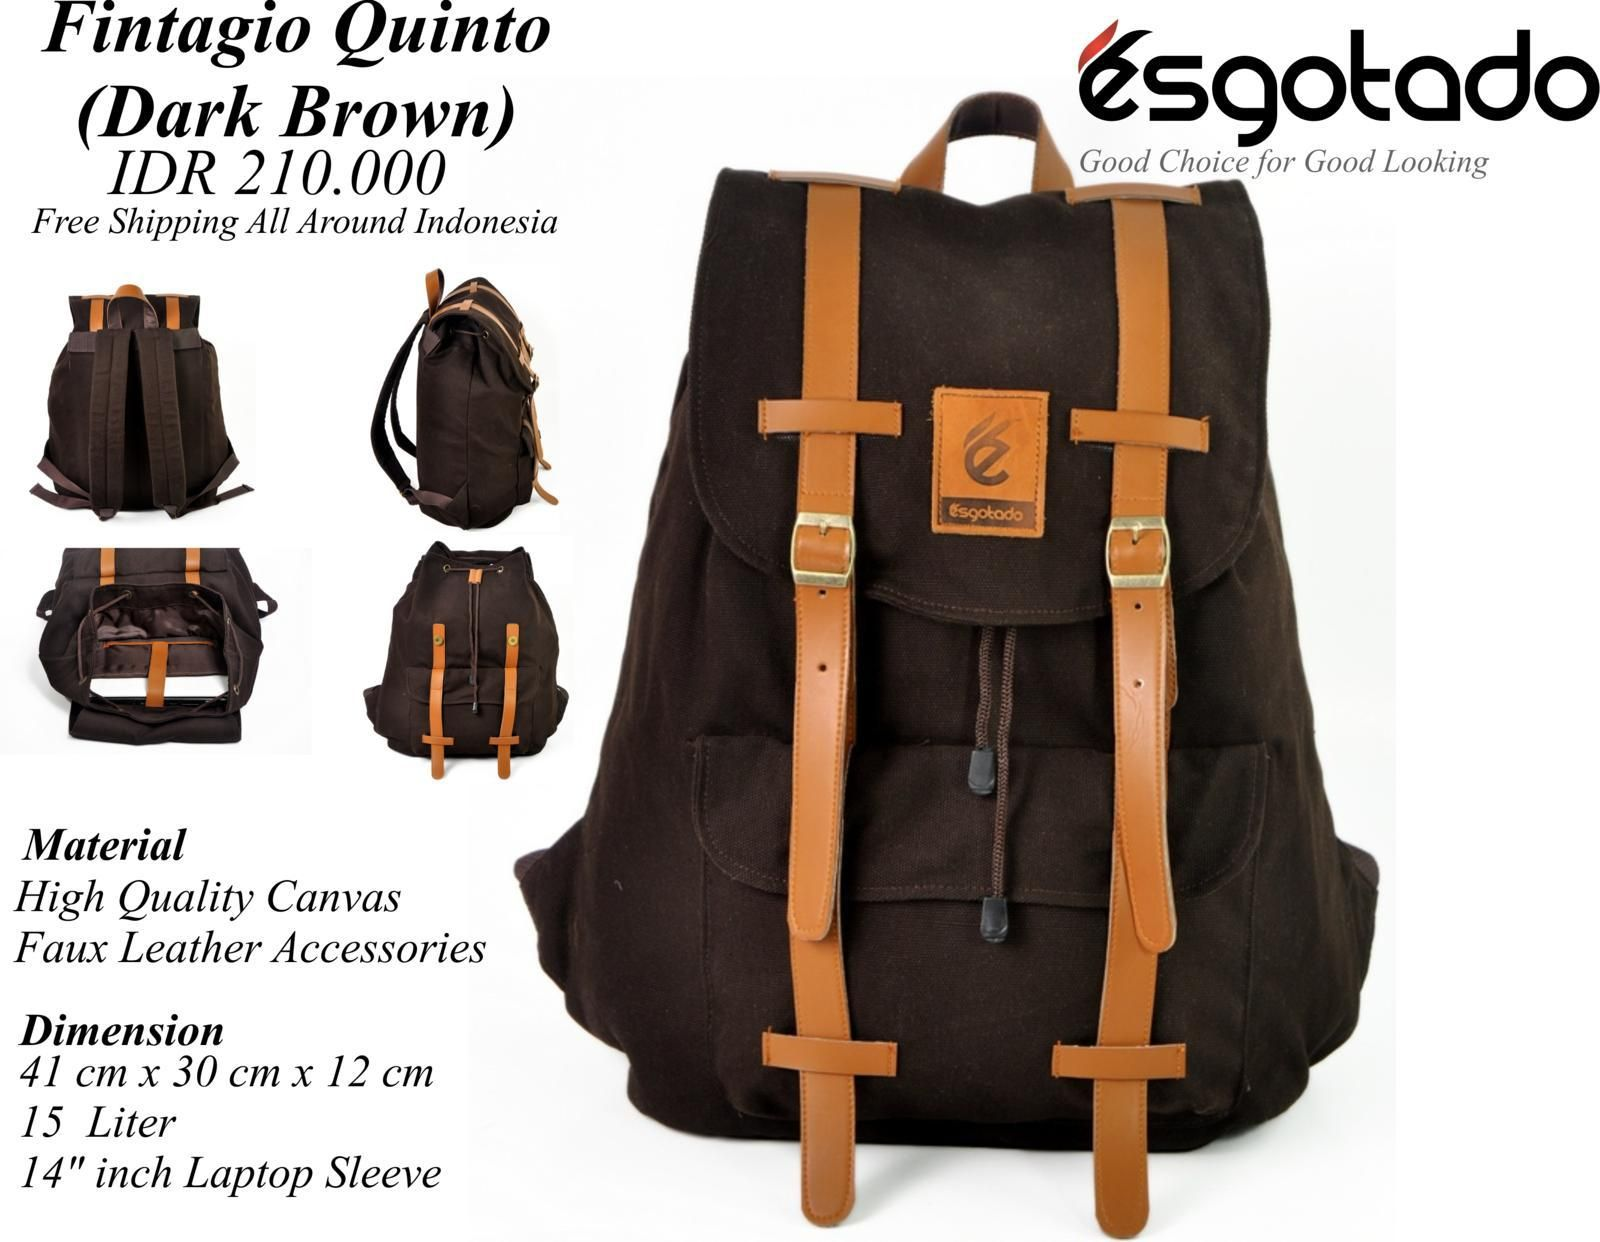 FINTAGIO QUINTO DARK BROWN sms/whatsapp: 082219180163 pin: 7DD85355 (full) BBM CHANNEL: C002012CF LINE: cs.esgotado